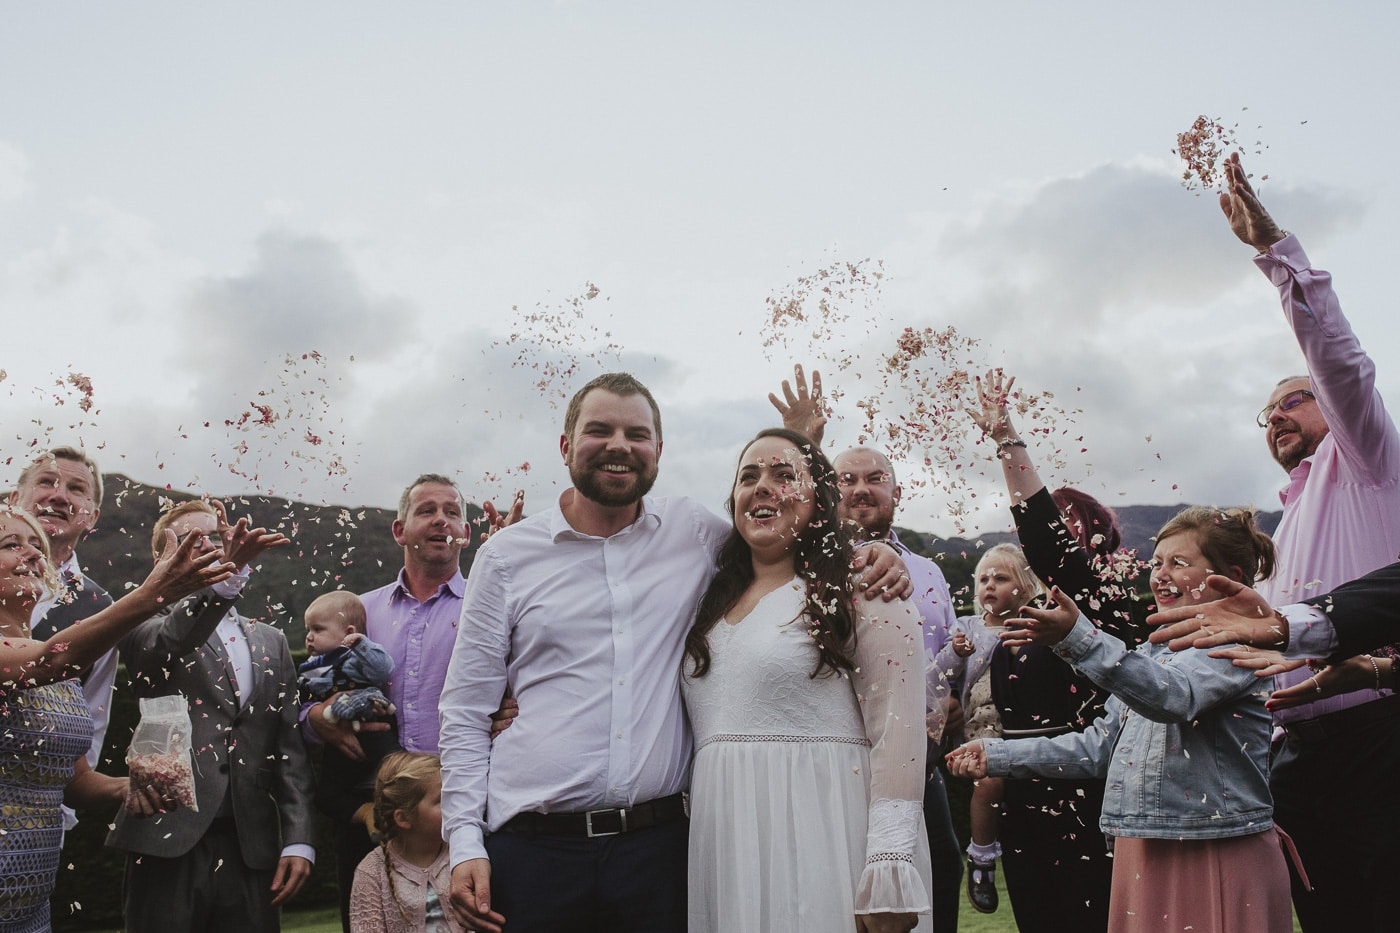 Smiling bride and groom under confetti having wedding photography